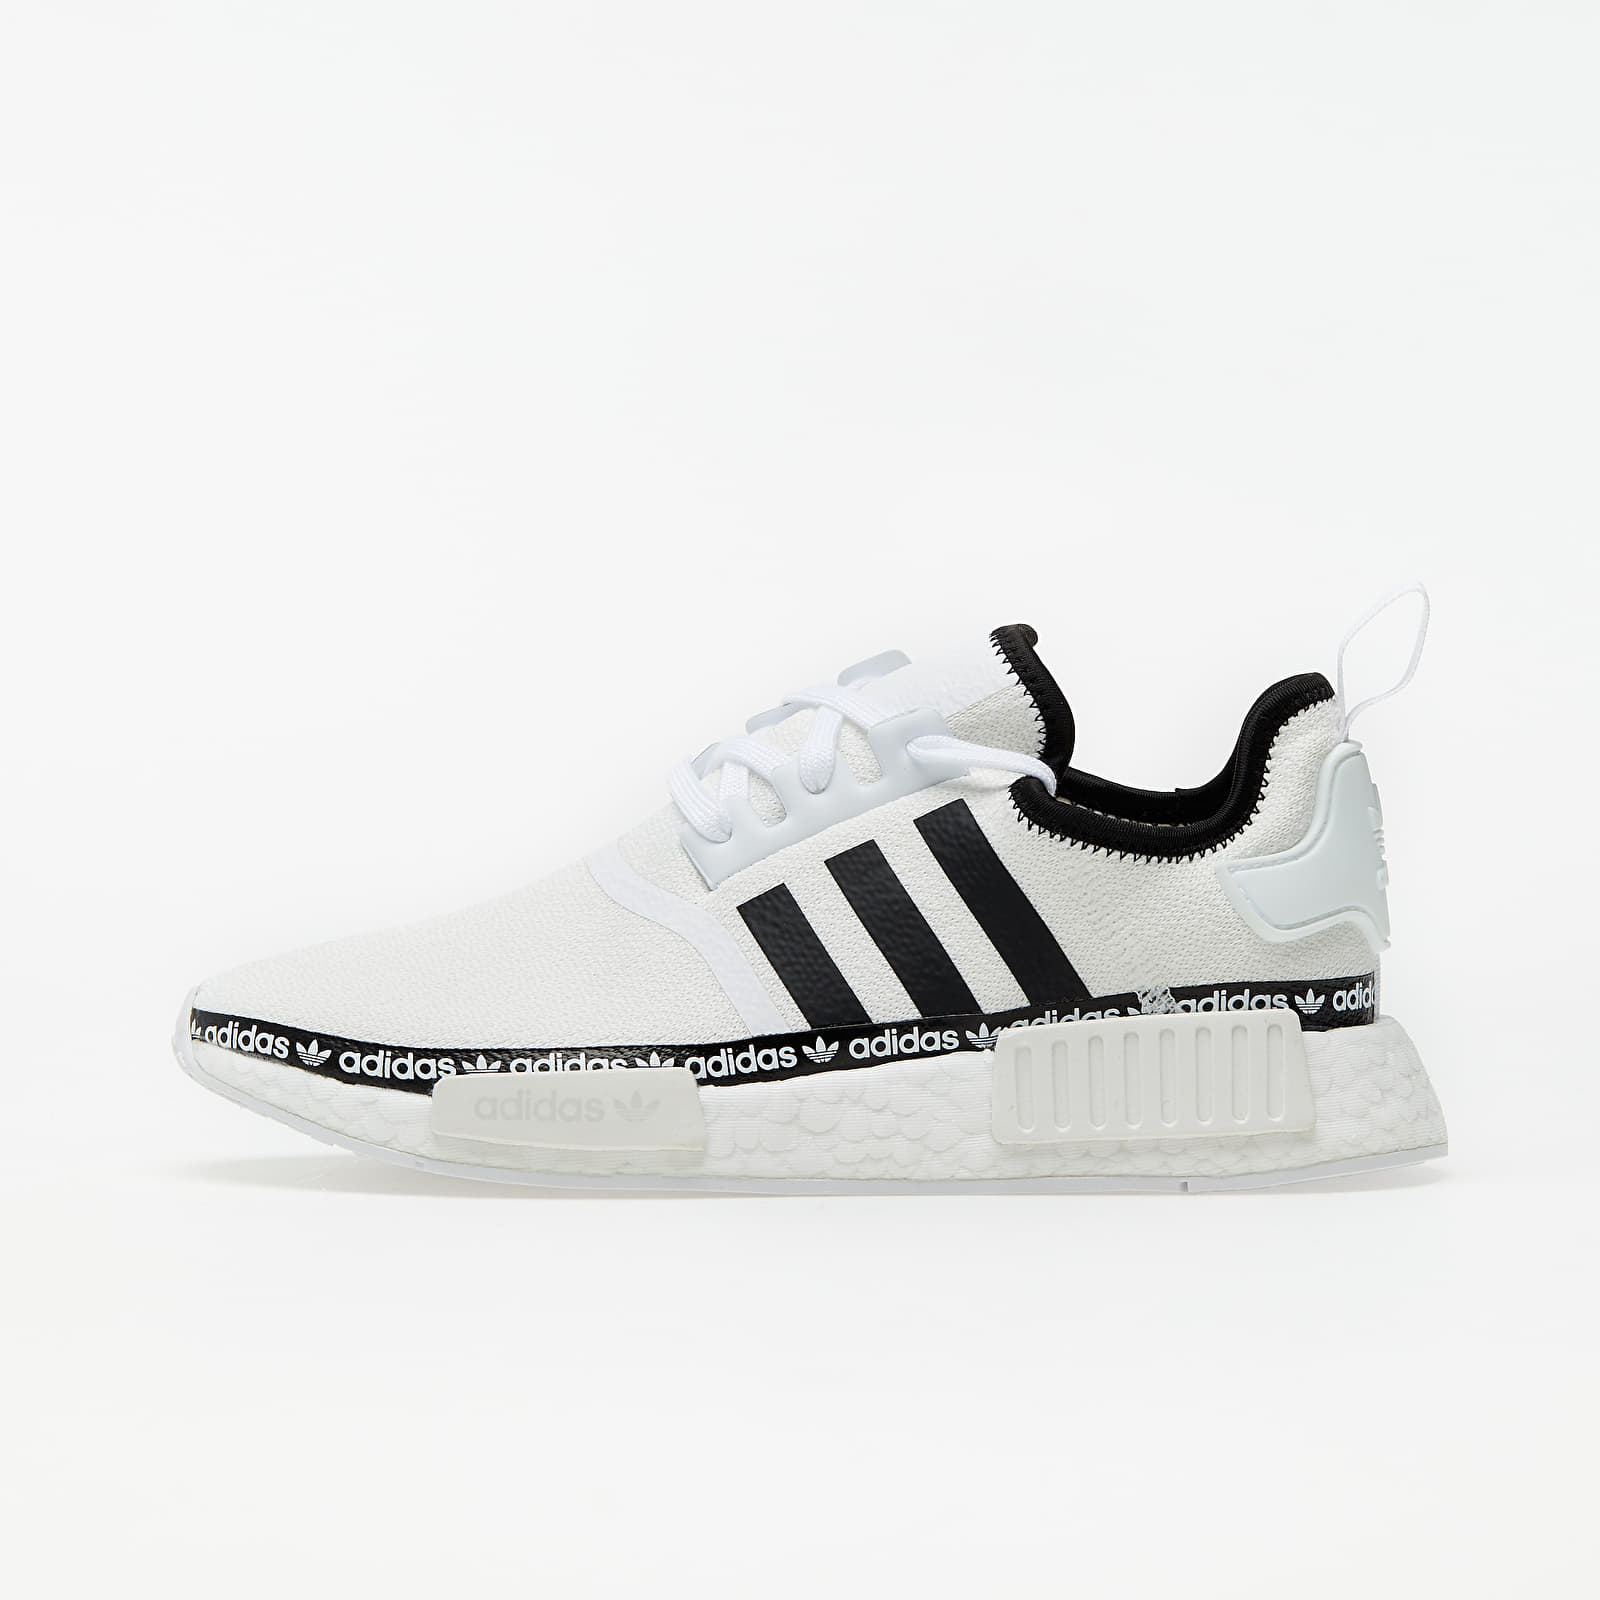 Chaussures et baskets homme adidas NMD_R1 Ftw White/ Core Black/ Ftw White